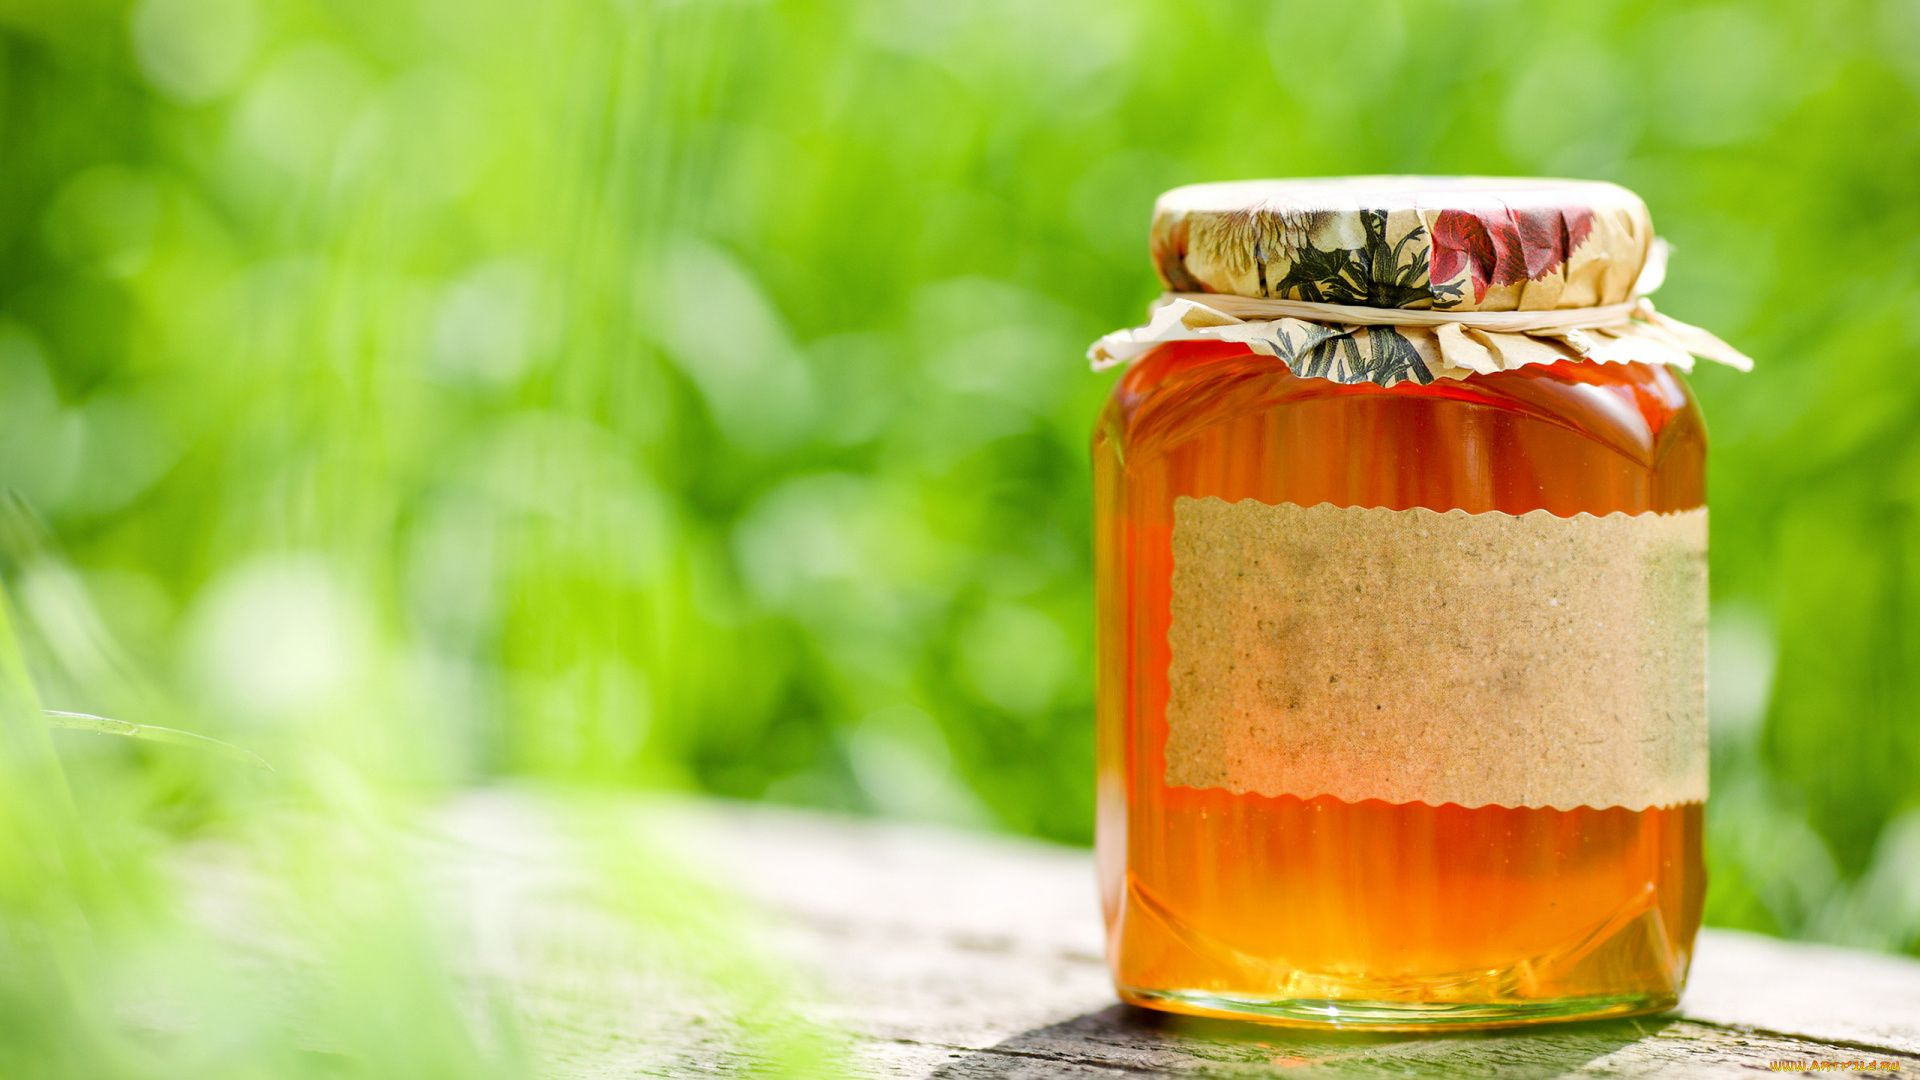 Honey download free wallpaper image search